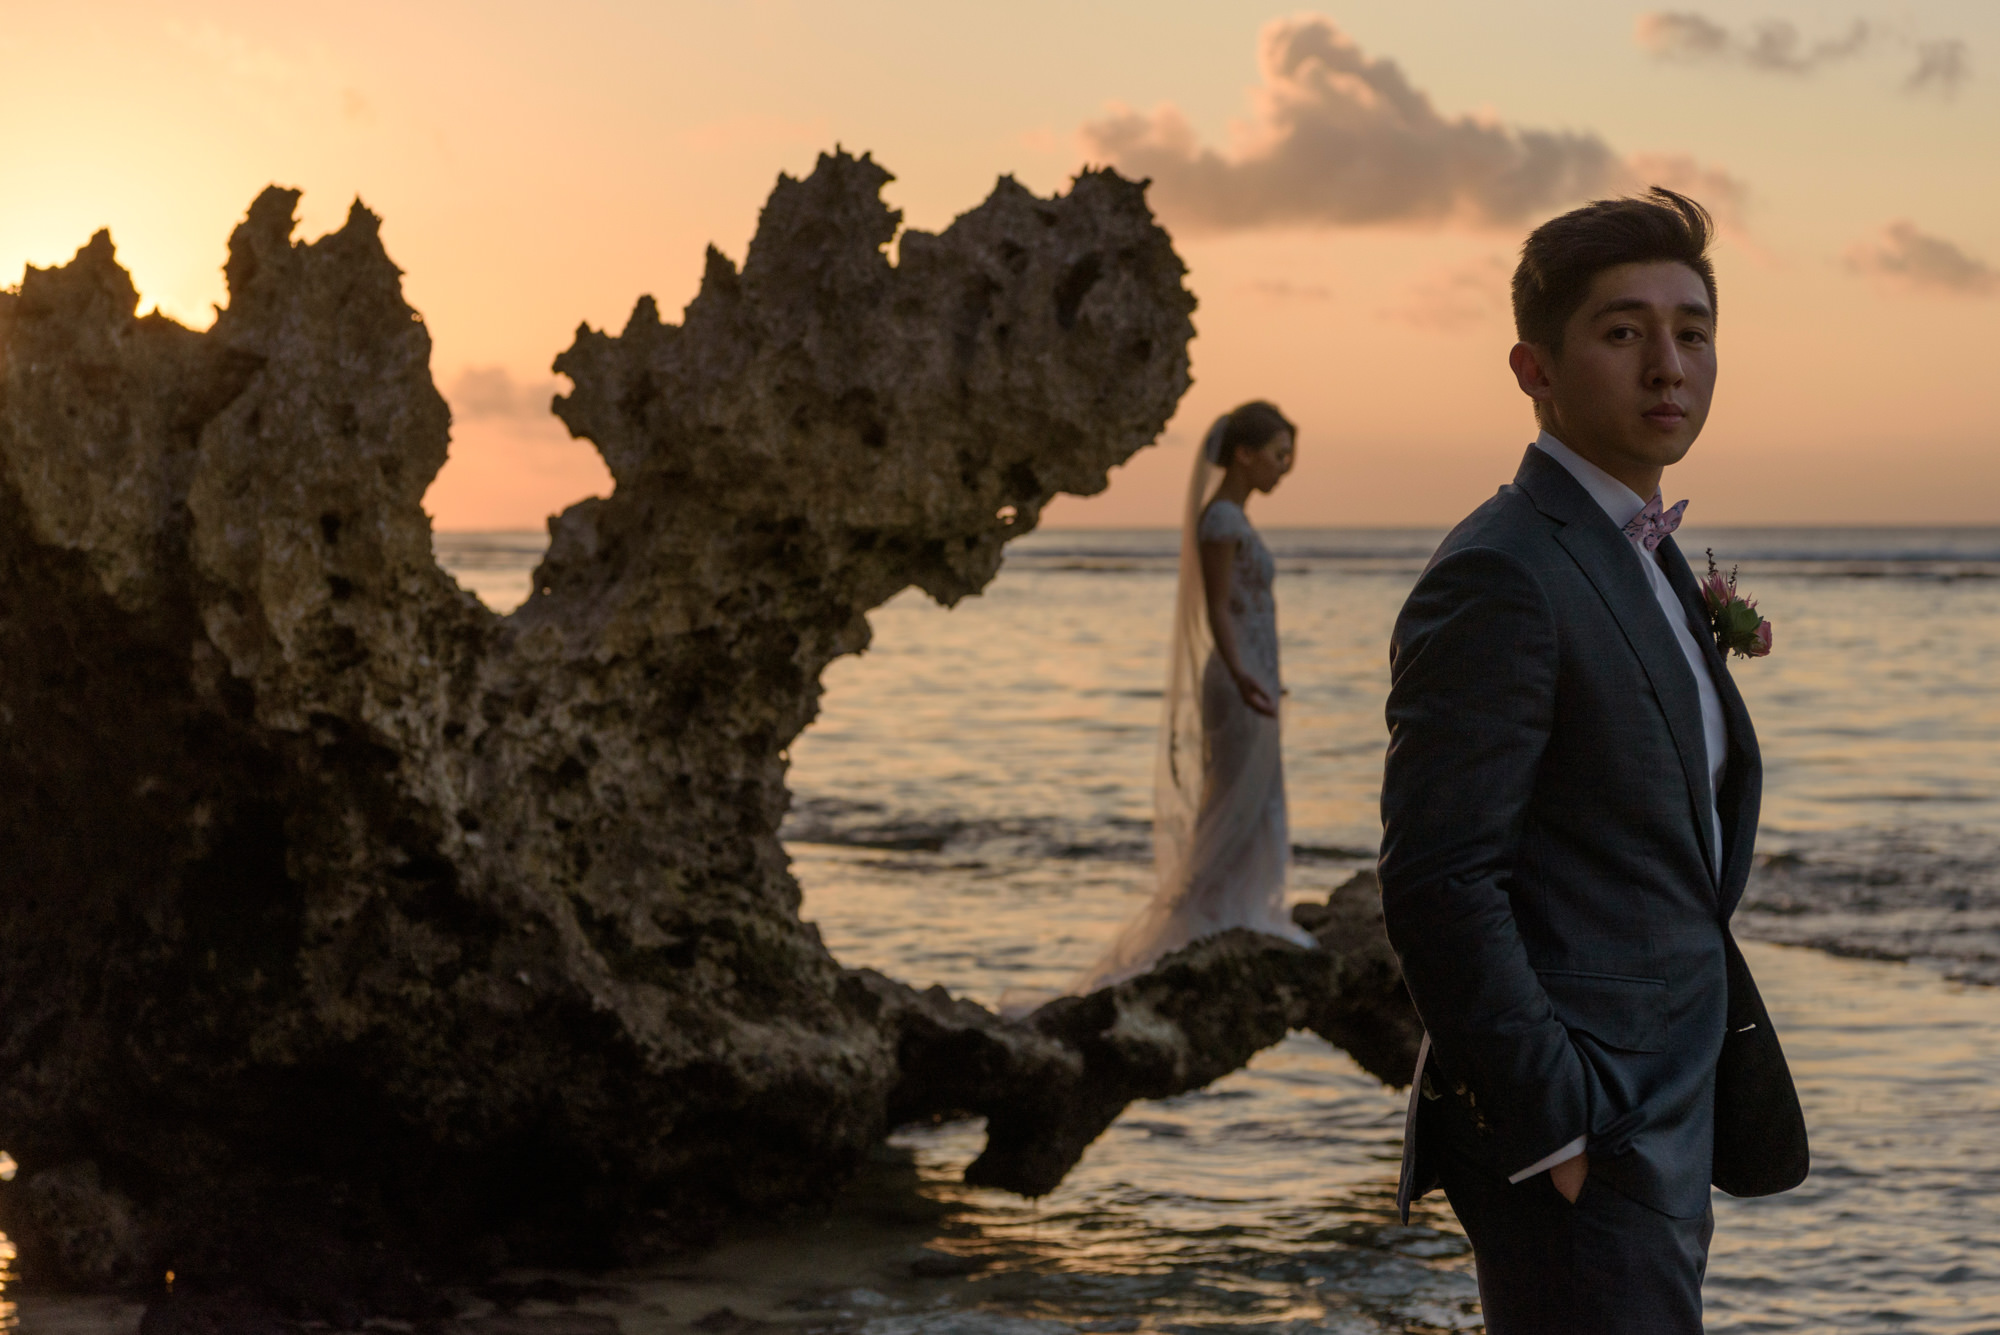 Portrait of groom during pastel sunset with bride in background  - Studio Impressions Photography